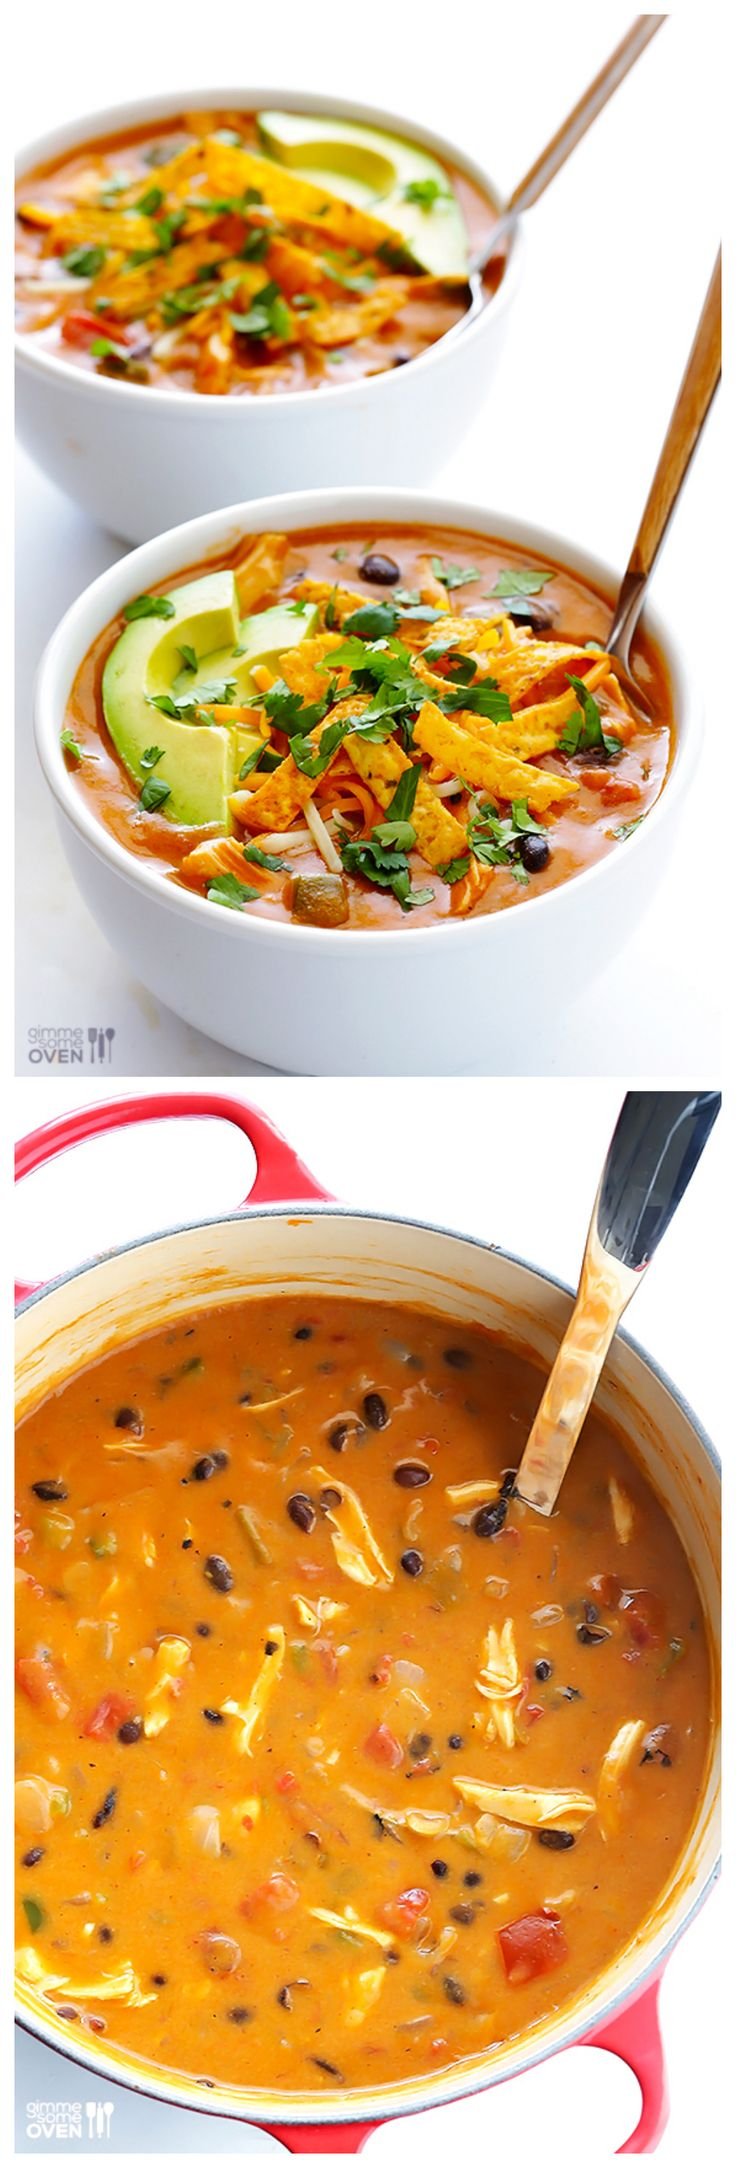 20-Minute Cheesy Chicken Enchilada Soup -- inspired by the popular soup at Chili's | gimmesomeoven.com #recipe